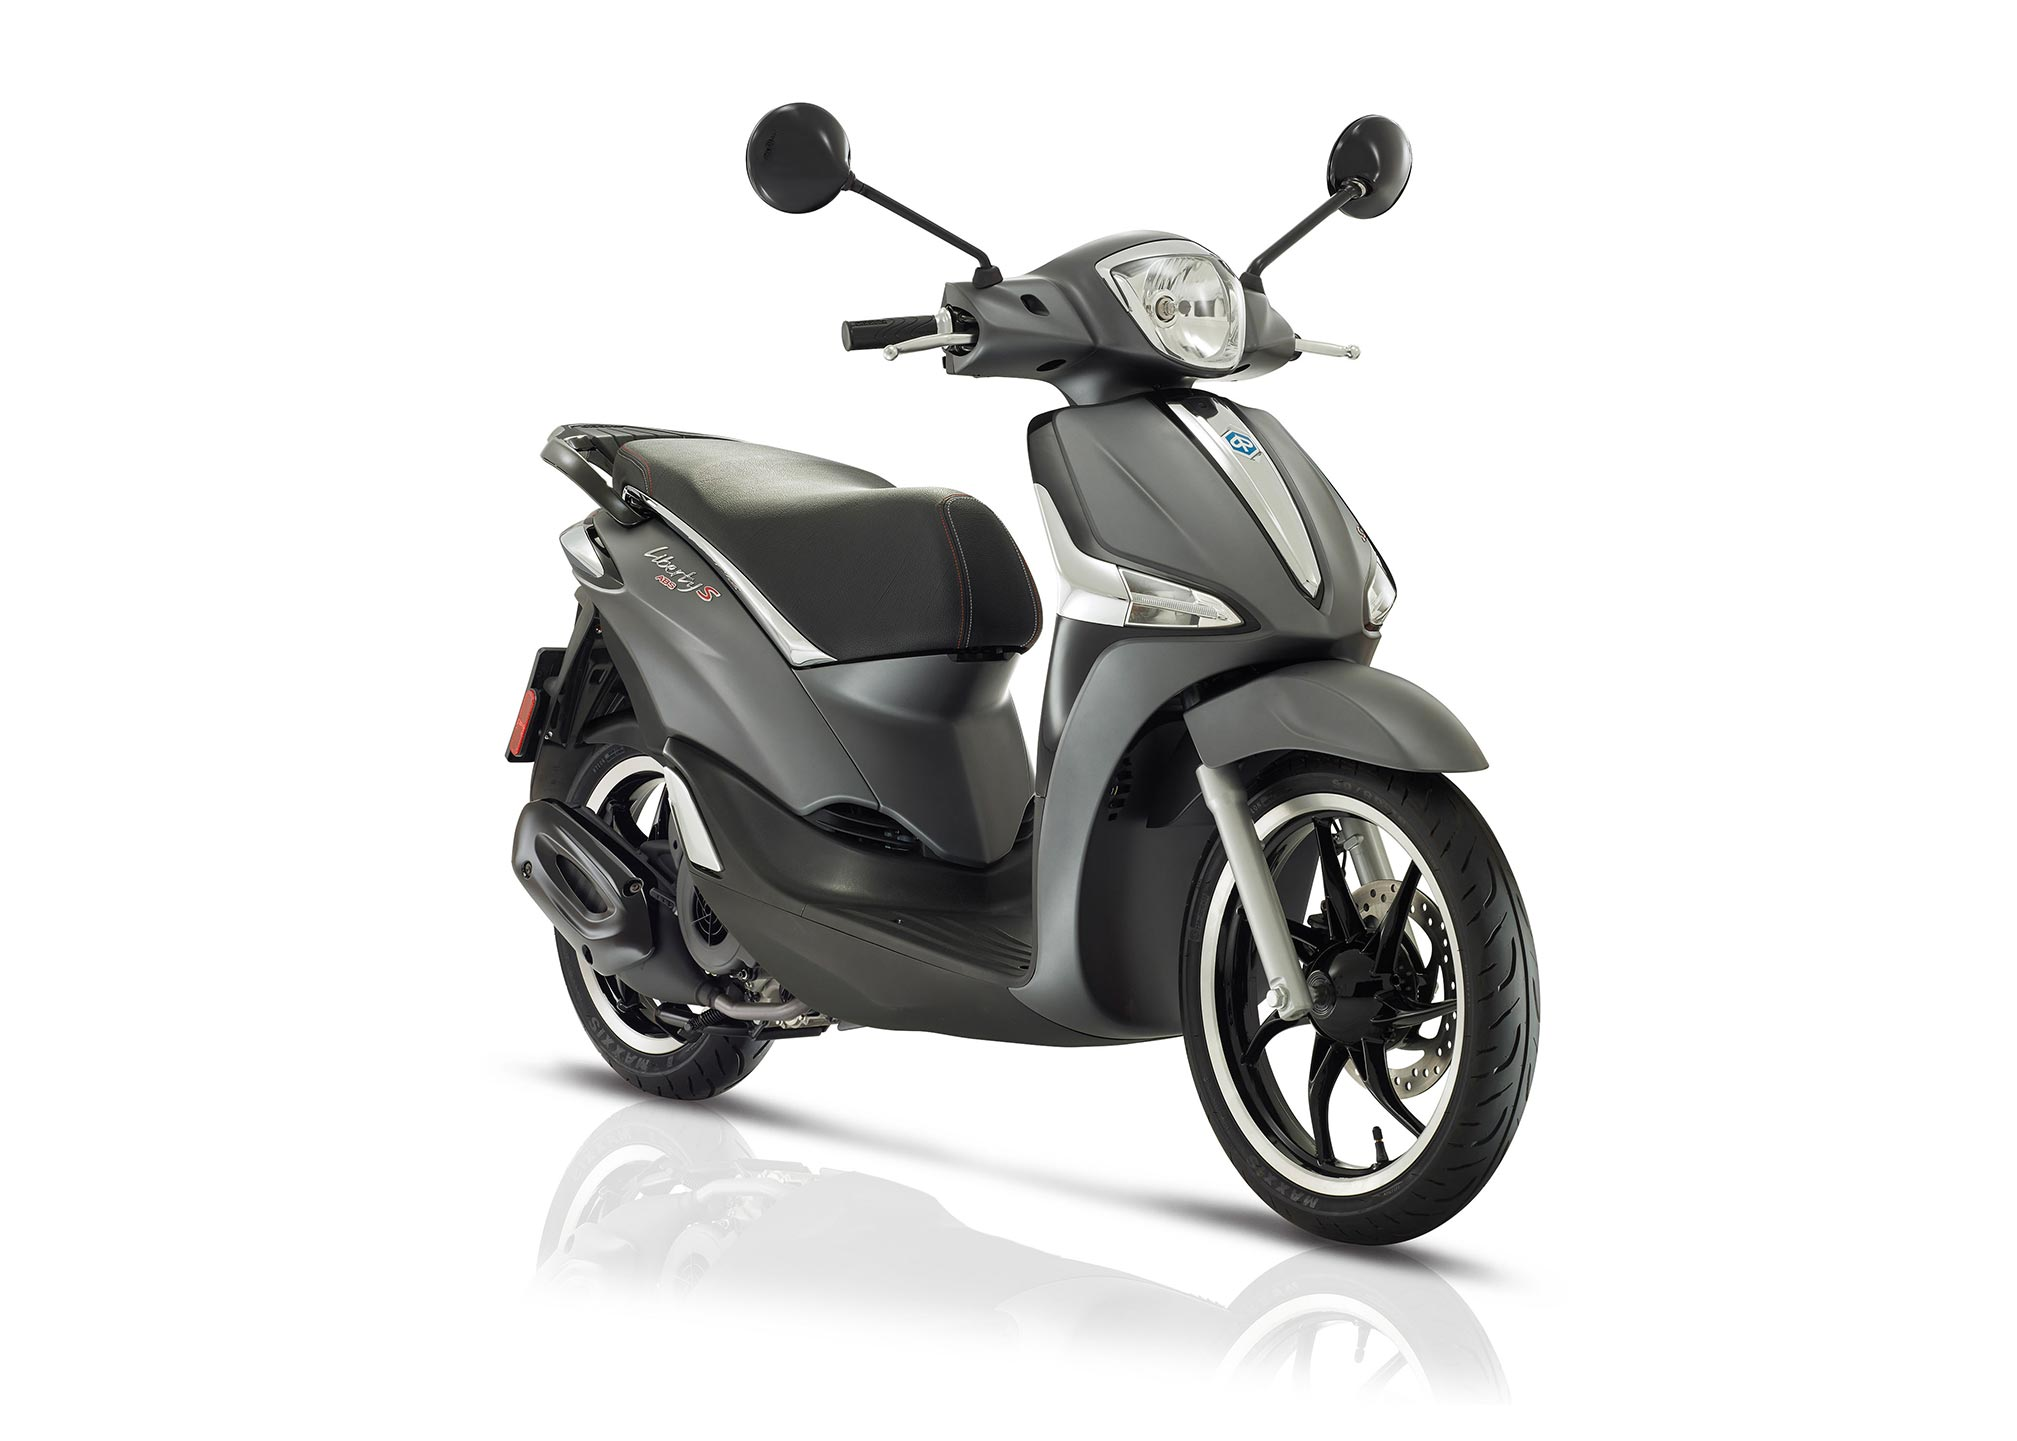 2017 piaggio liberty 150s abs iget review